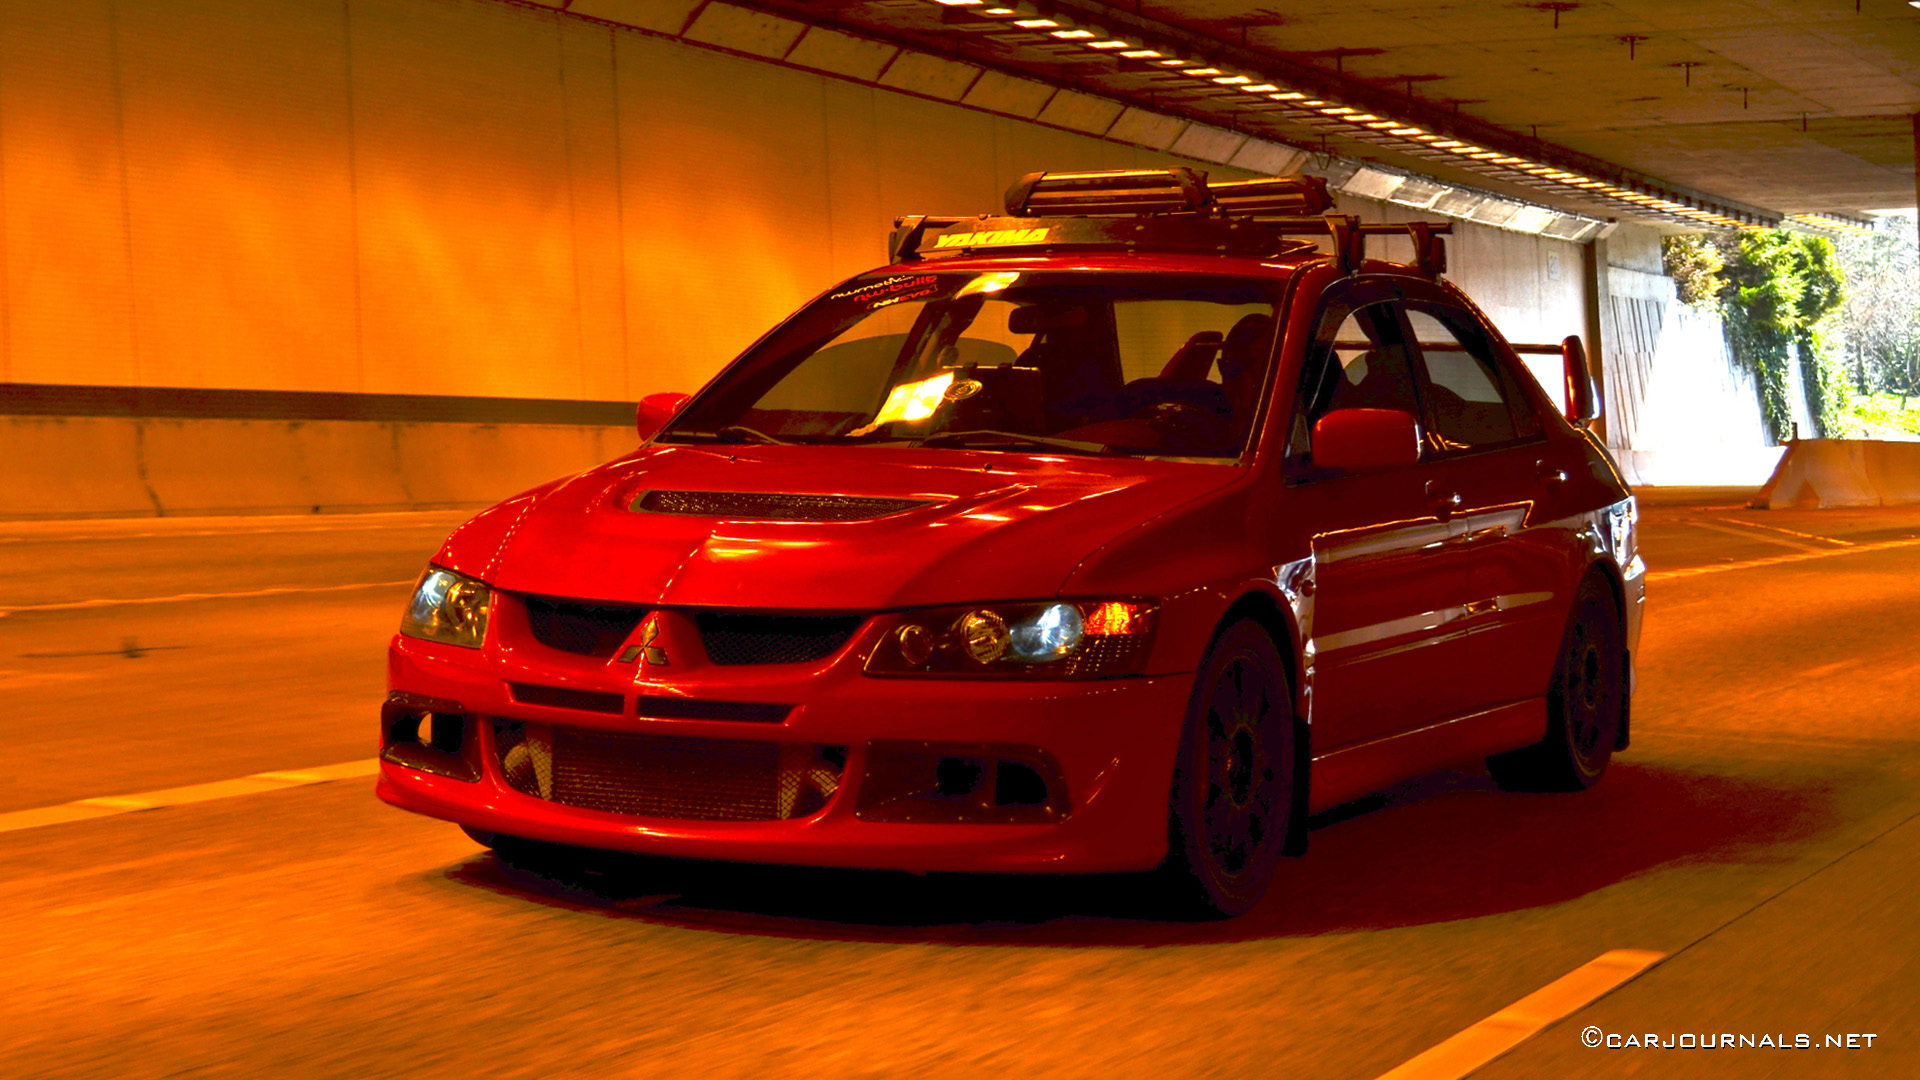 Wallpaper Evo Car 4k Wallpaper Collections